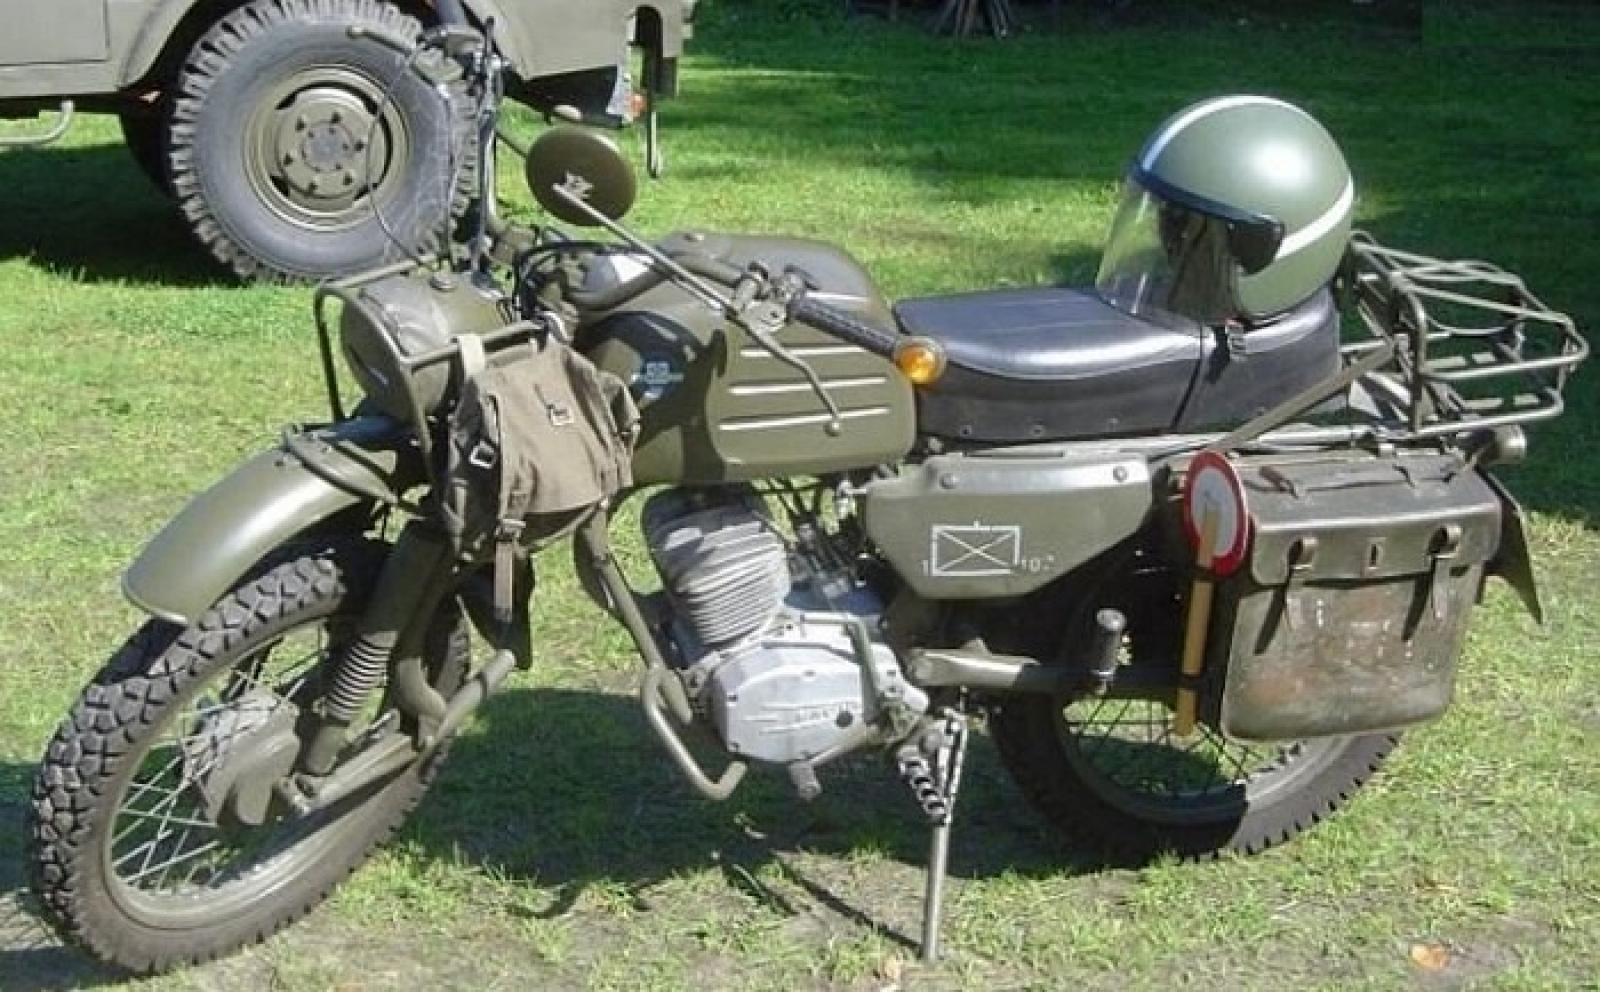 Hercules K 125 Military 1983 images #74533